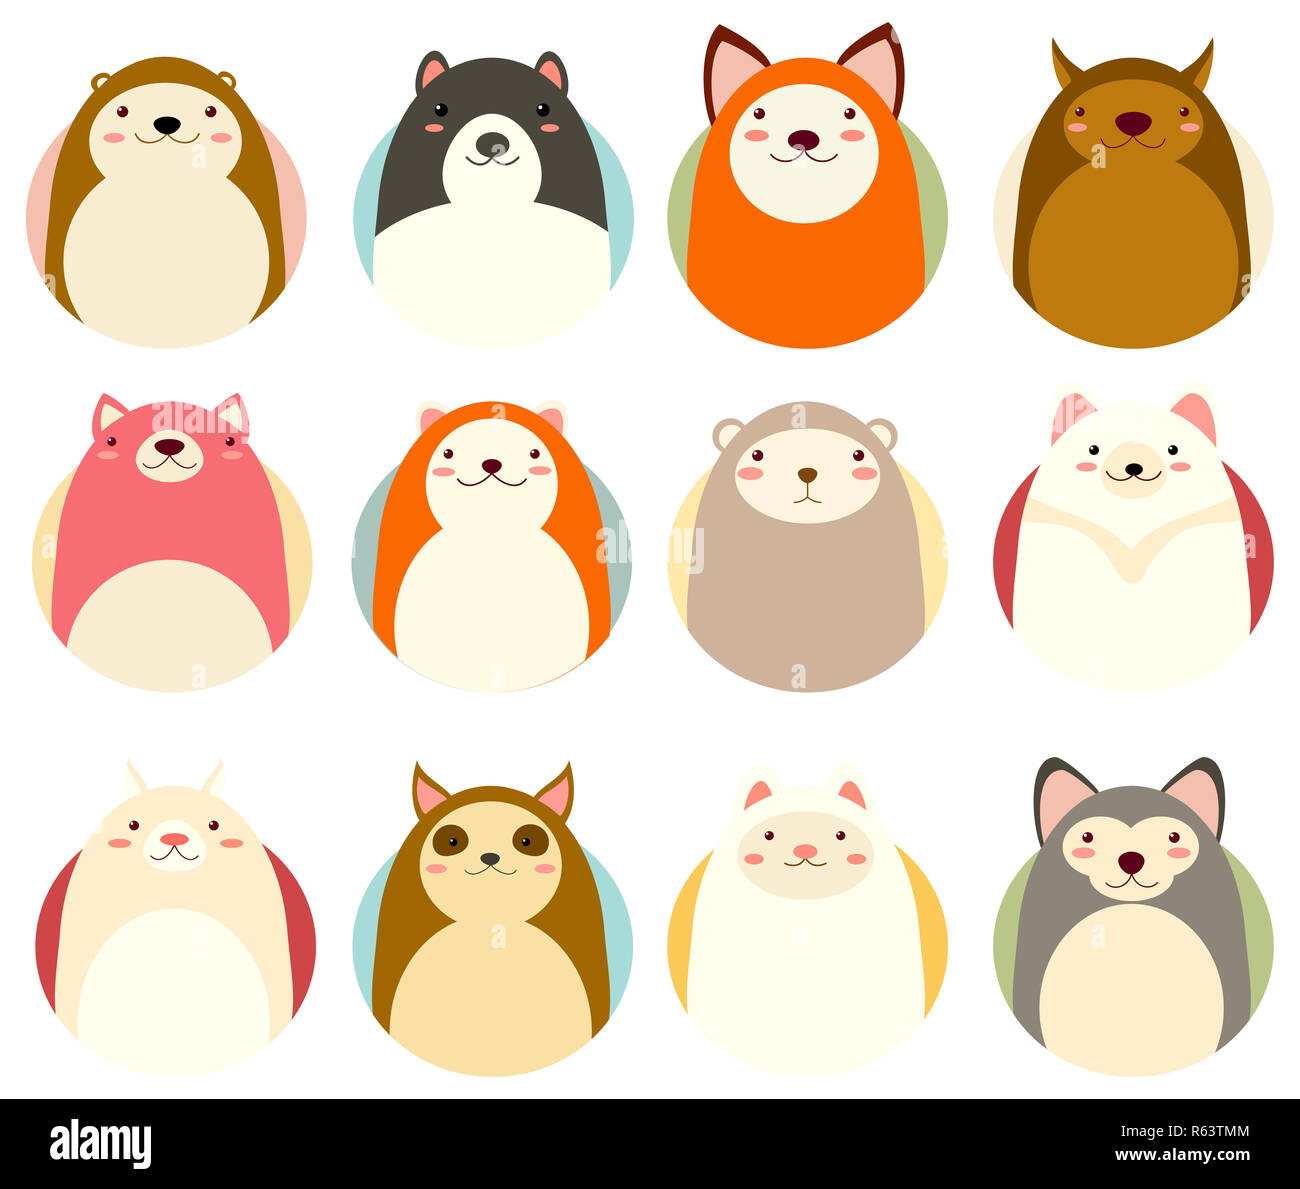 Set of avatars icons in naive hand drawn style with cute animals in retro pastel colors. EPS8 - Stock Image